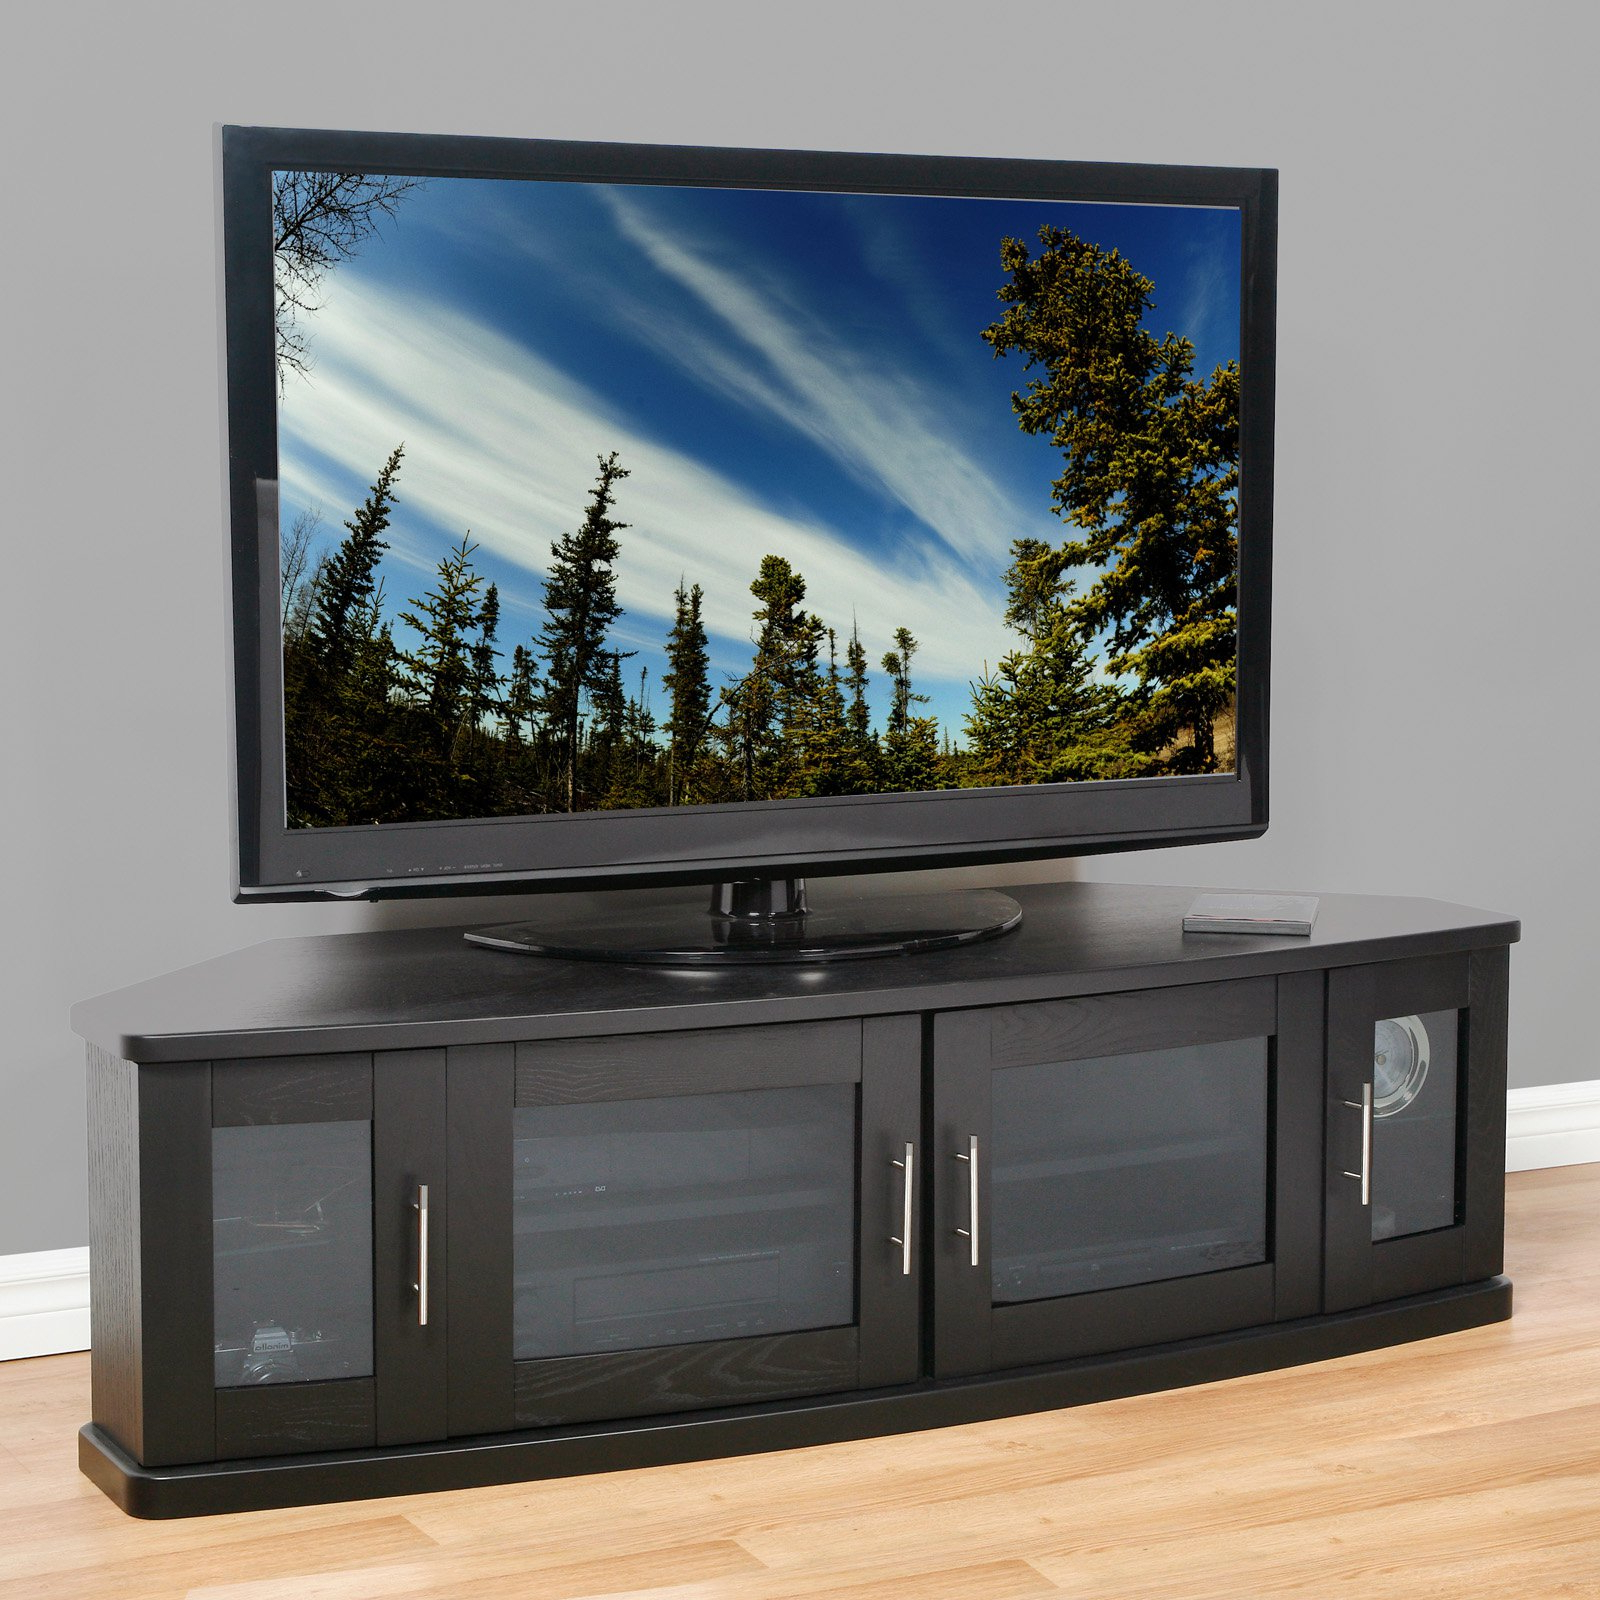 Best And Newest Plateau Newport 62 Inch Corner Tv Stand In Black – Walmart With Regard To Black Corner Tv Stands For Tvs Up To (View 16 of 20)